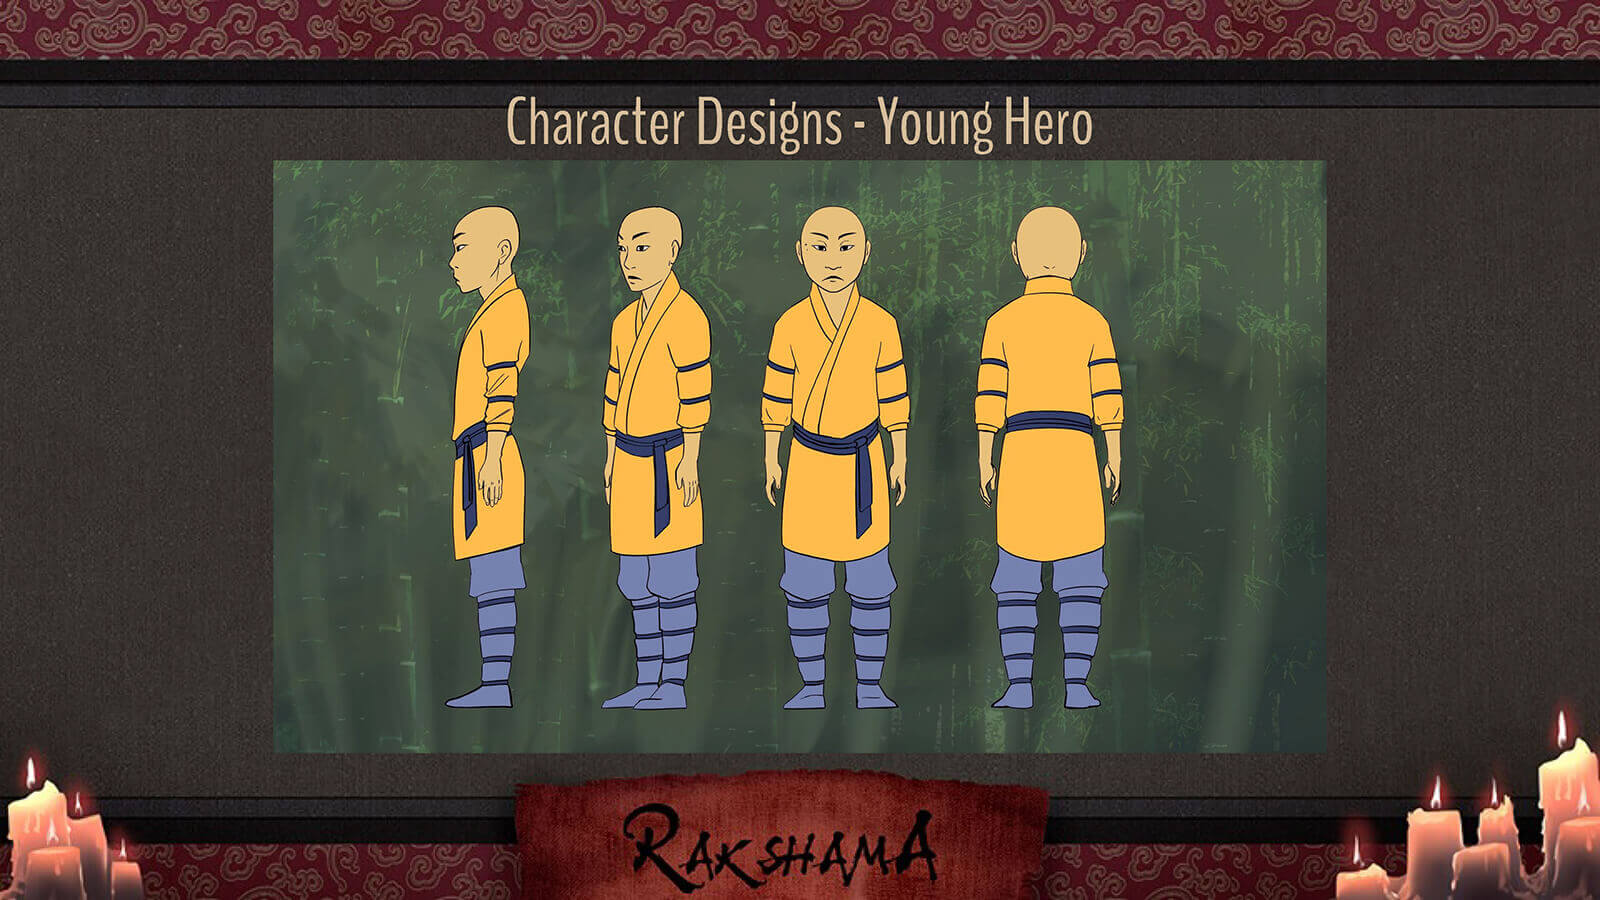 Character Design slide for the film Rakshama, depicting the Young Hero character, a warrior in a yellow and blue clothing